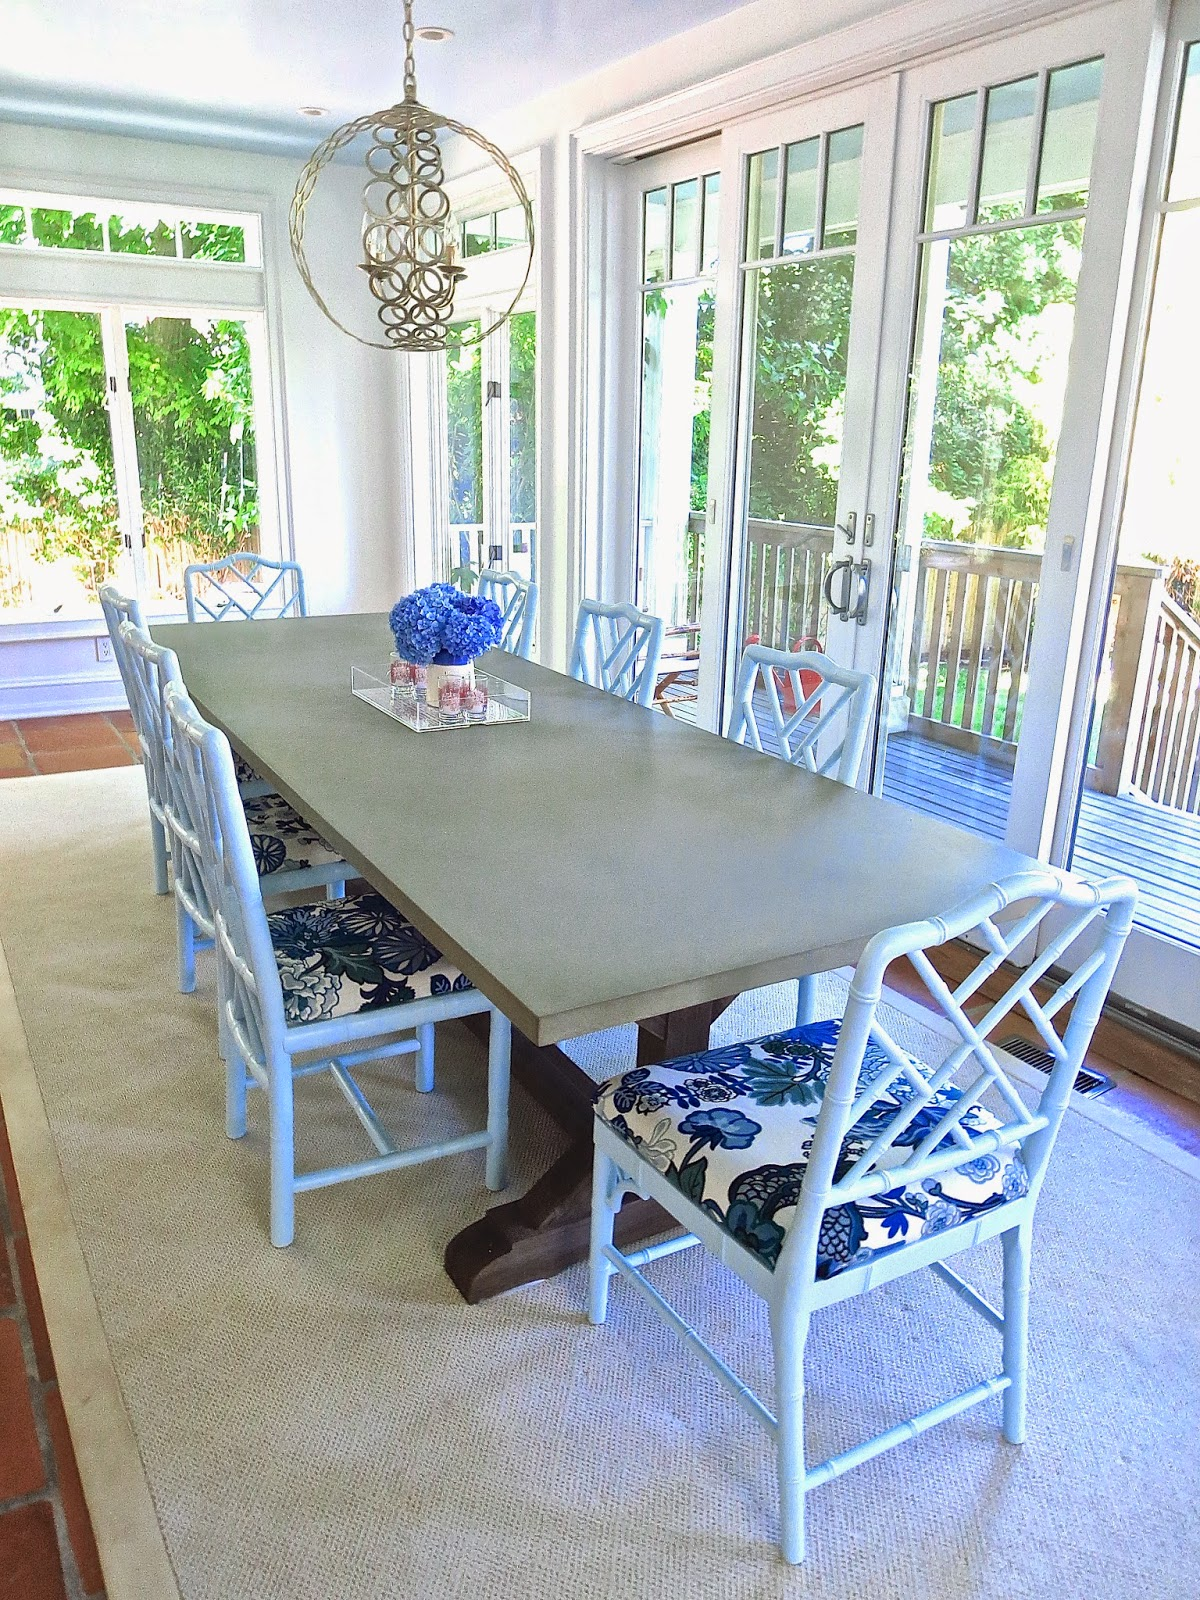 7 EASY STEPS TO TRANSFORMING DINING ROOM CHAIRS